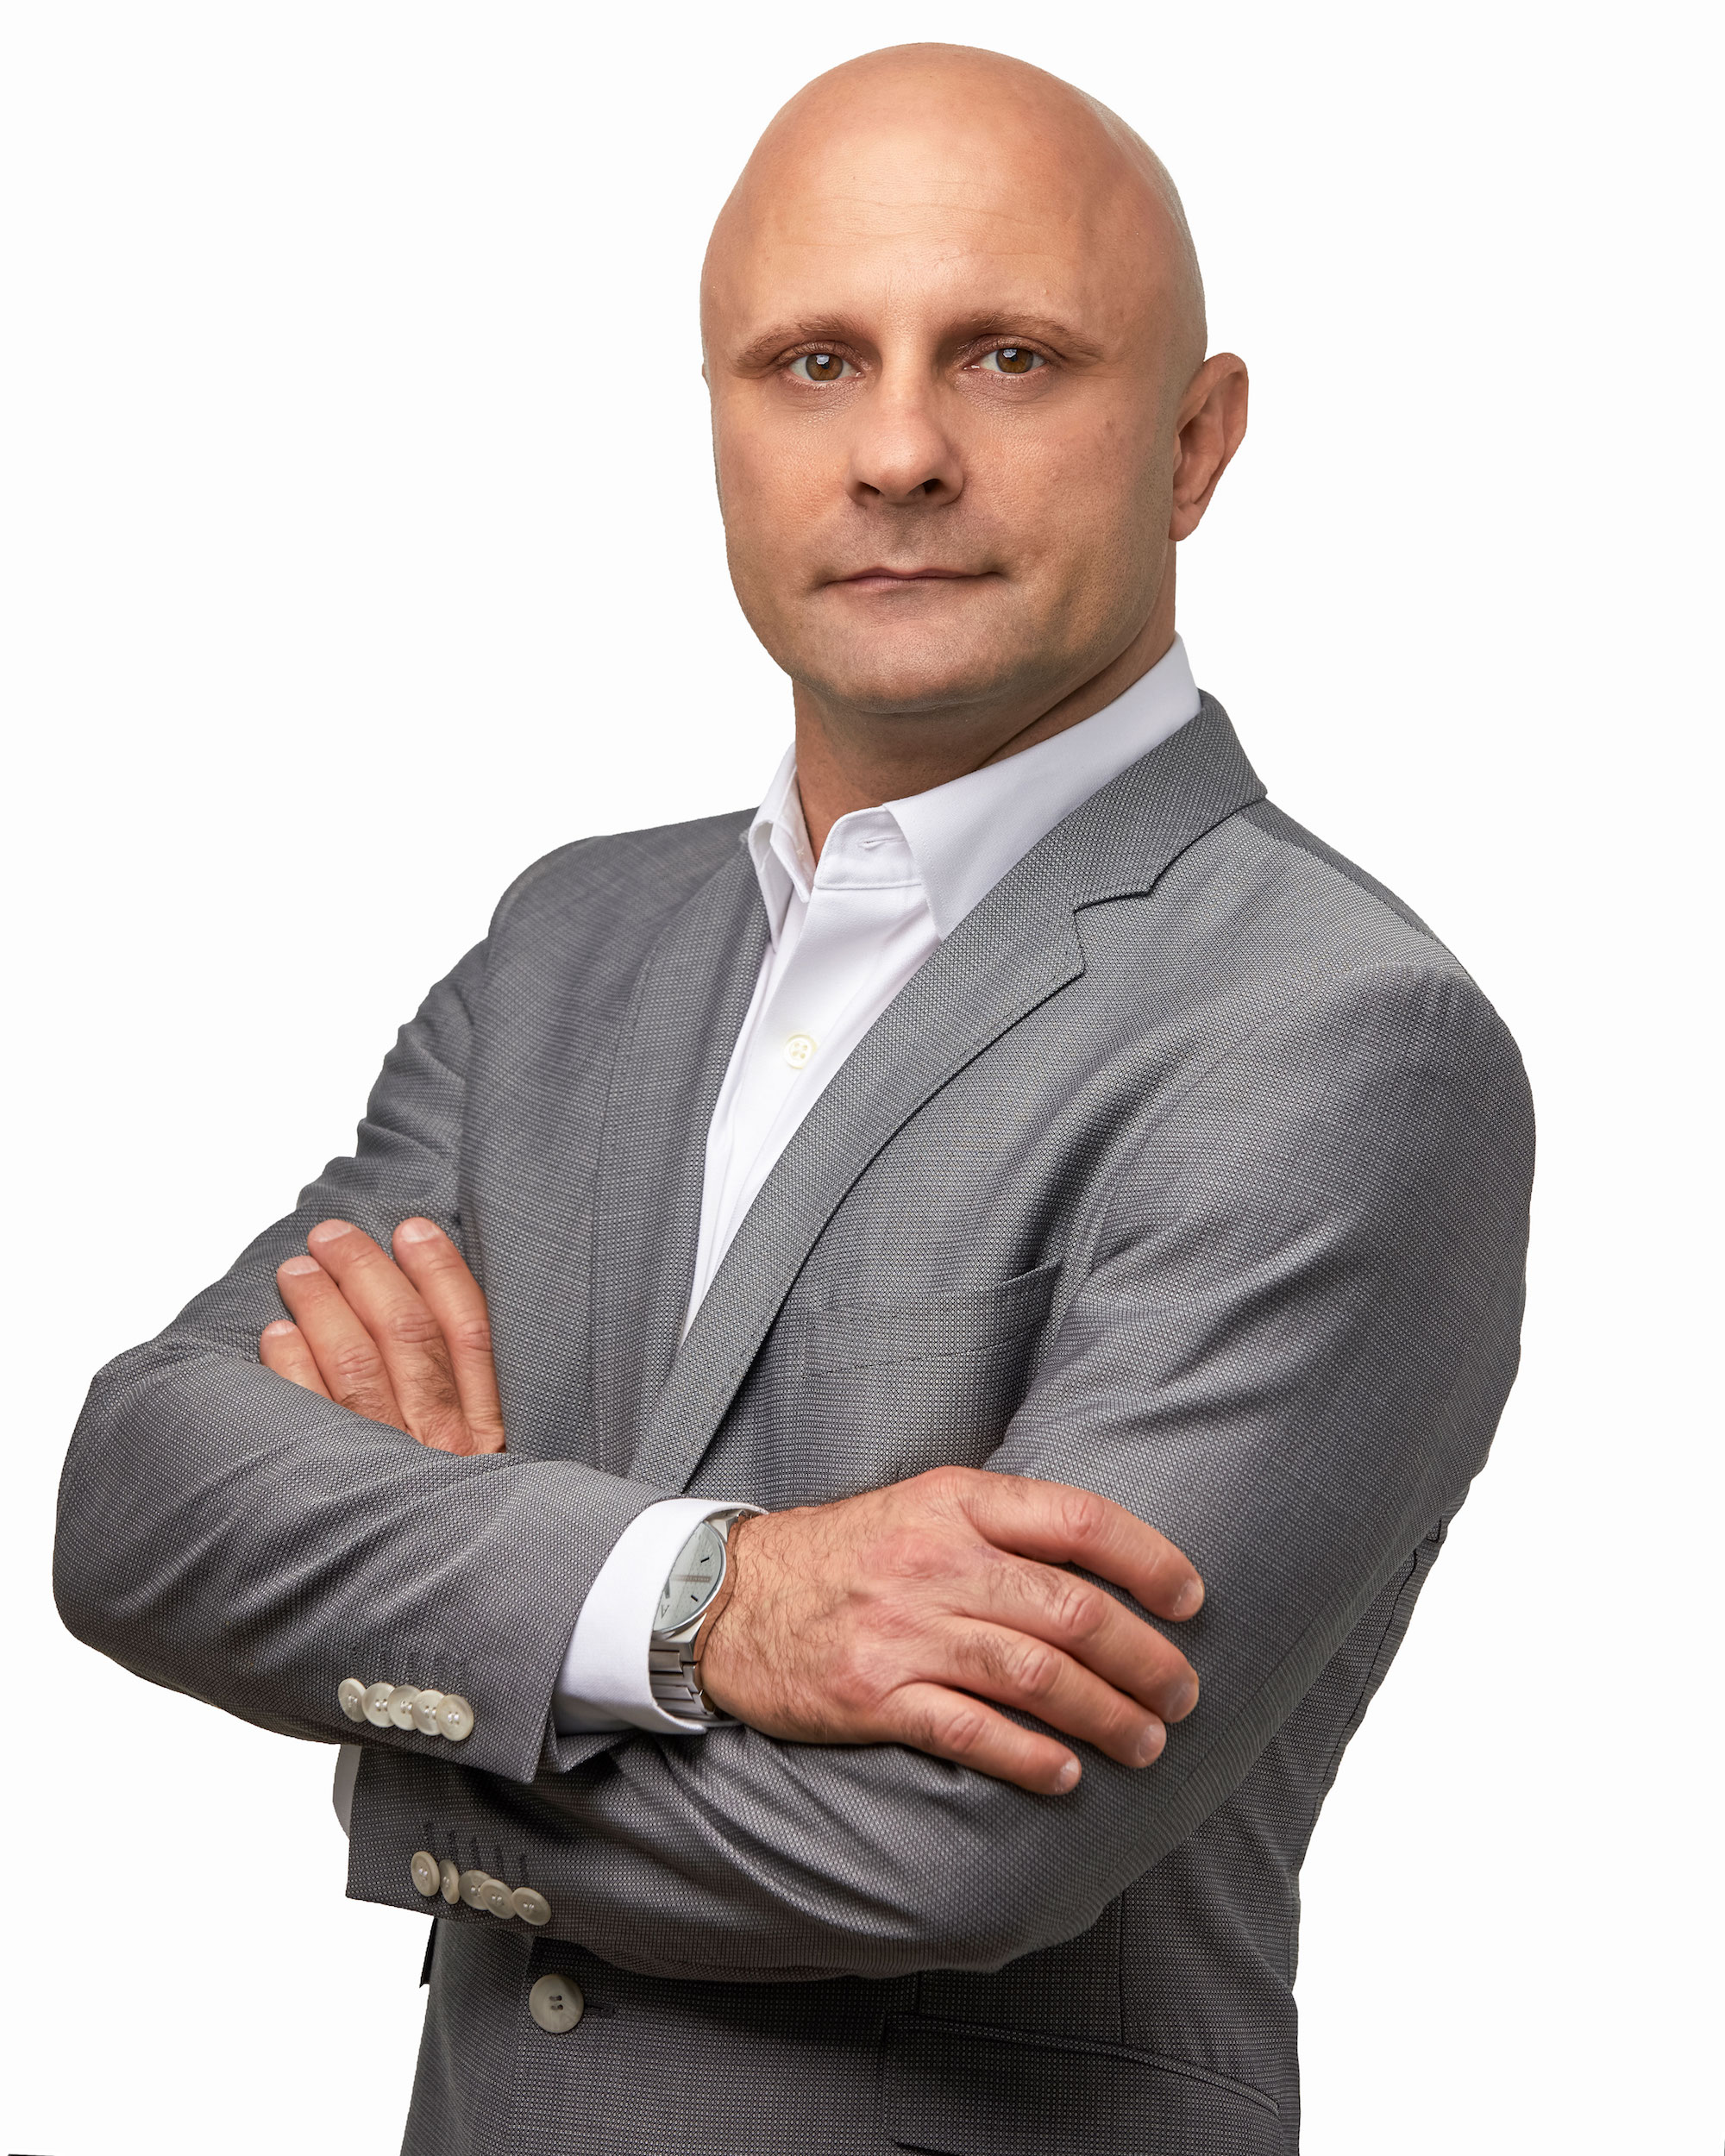 "Fikret Sukru,President - As a visionary leader, Fikret's goal and passion is to help individuals and businesses realize their potential and growth that they never thought possible. Using THE most effective and proven program in the world, Fikret helps clients diminish their negative inner voice that creates barriers to prevent them from living up to their highest potential.As a Certified Master Coach and Certified Corporate Speaker with the International Association of Corporate Speakers, Fikret regularly speaks to audiences of various sizes. His keynote speeches, full of inspiration and personal stories, speak to the heart and mind of people to bring about immediate change and long-term results. Fikret's life story has also been featured in newspapers and in articles.Fikret is also a co-author with Brian Tracy in the best-selling book entitled ""Success in the New Economy"" ."